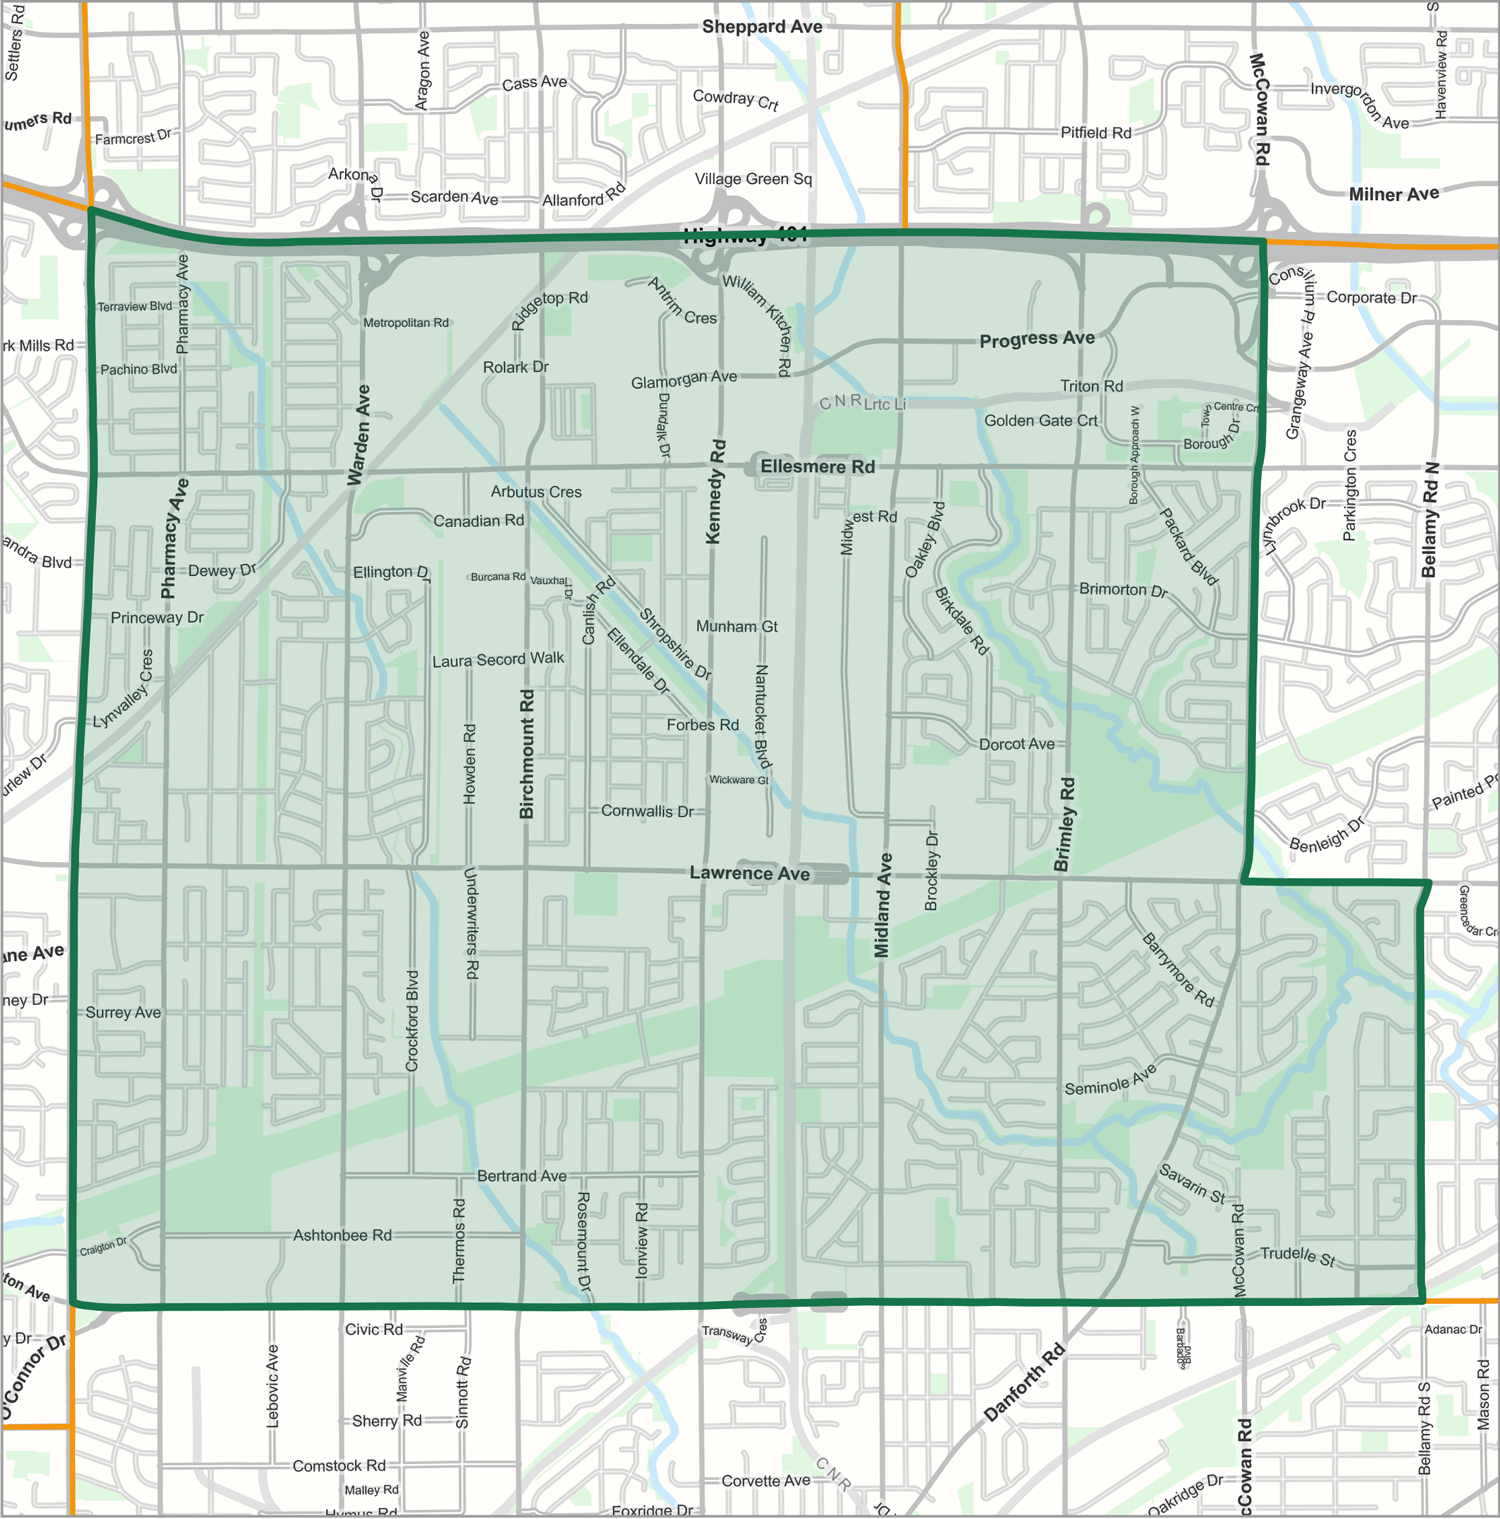 http://www.councillorthompson.com/wp-content/uploads/2019/02/Ward21-MAP.png